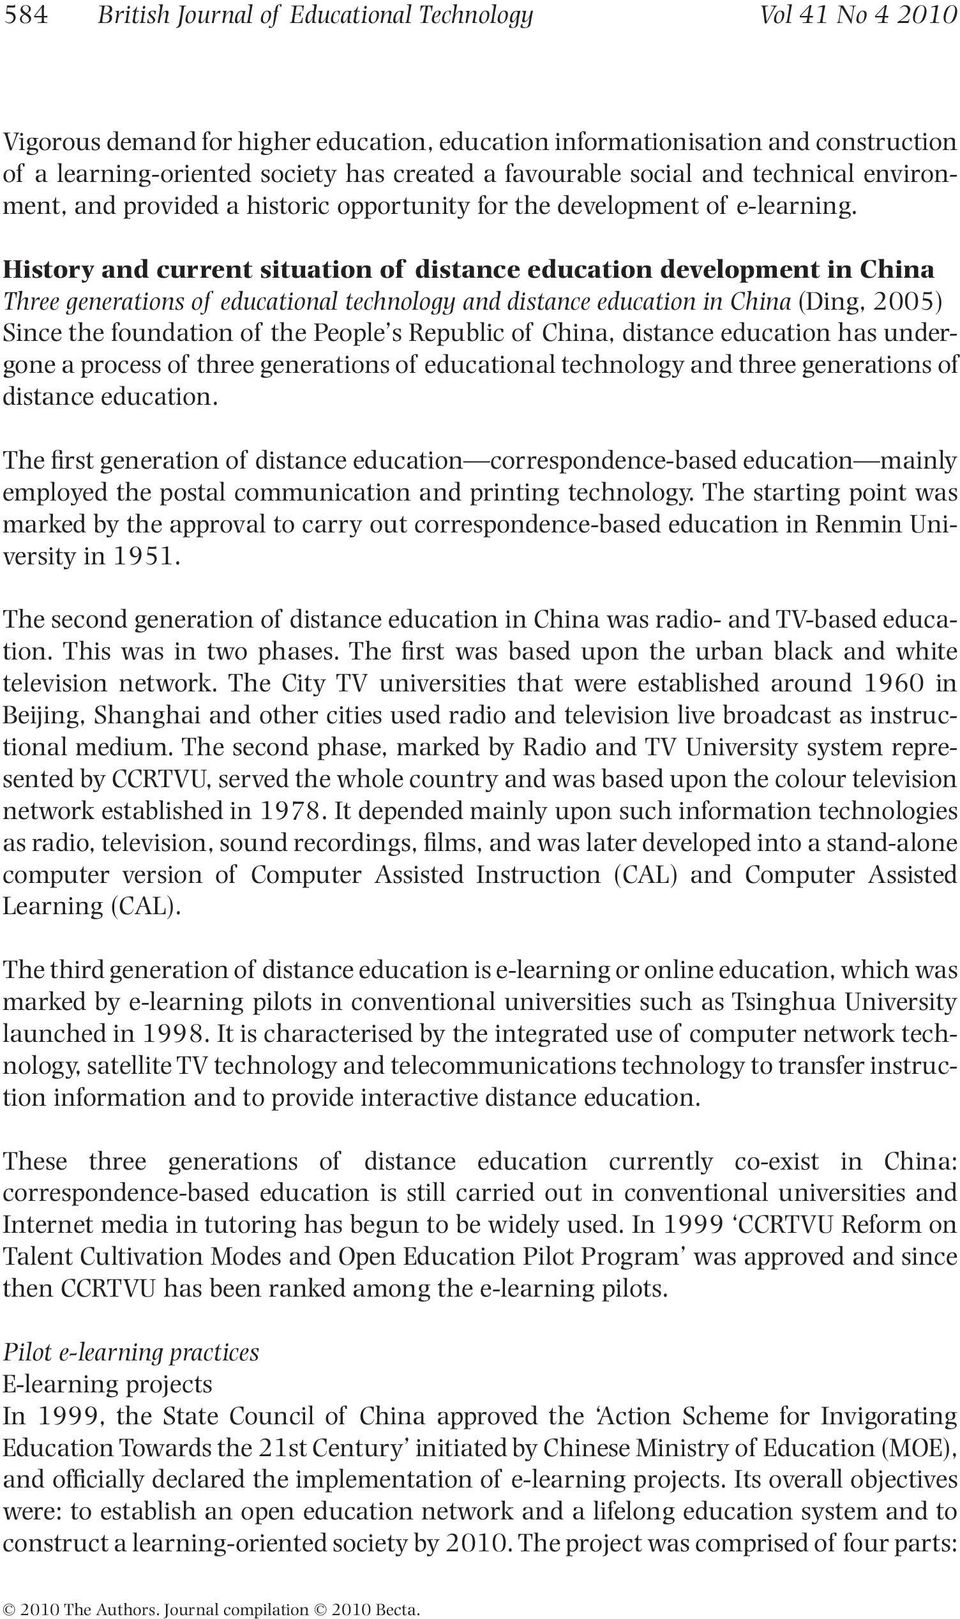 History and current situation of distance education development in China Three generations of educational technology and distance education in China (Ding, 2005) Since the foundation of the People s